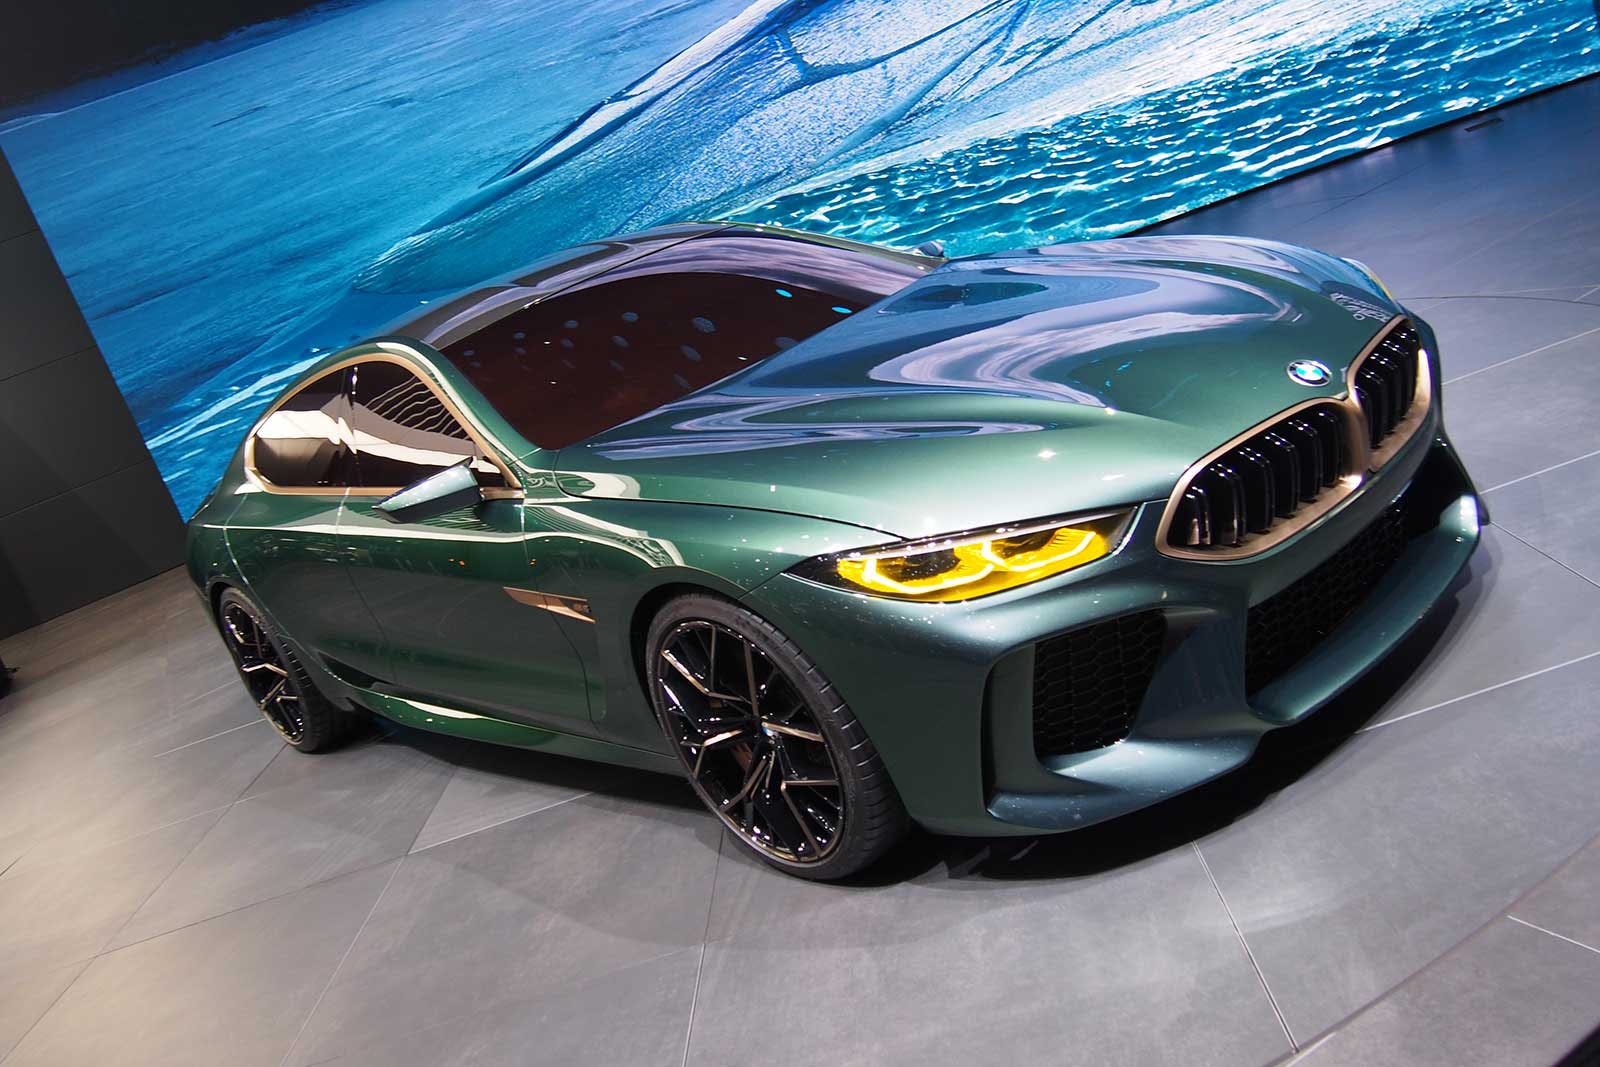 Bmw Concept M8 Gran Coupe A Low And Mean Greenish Gray Flagship Machine